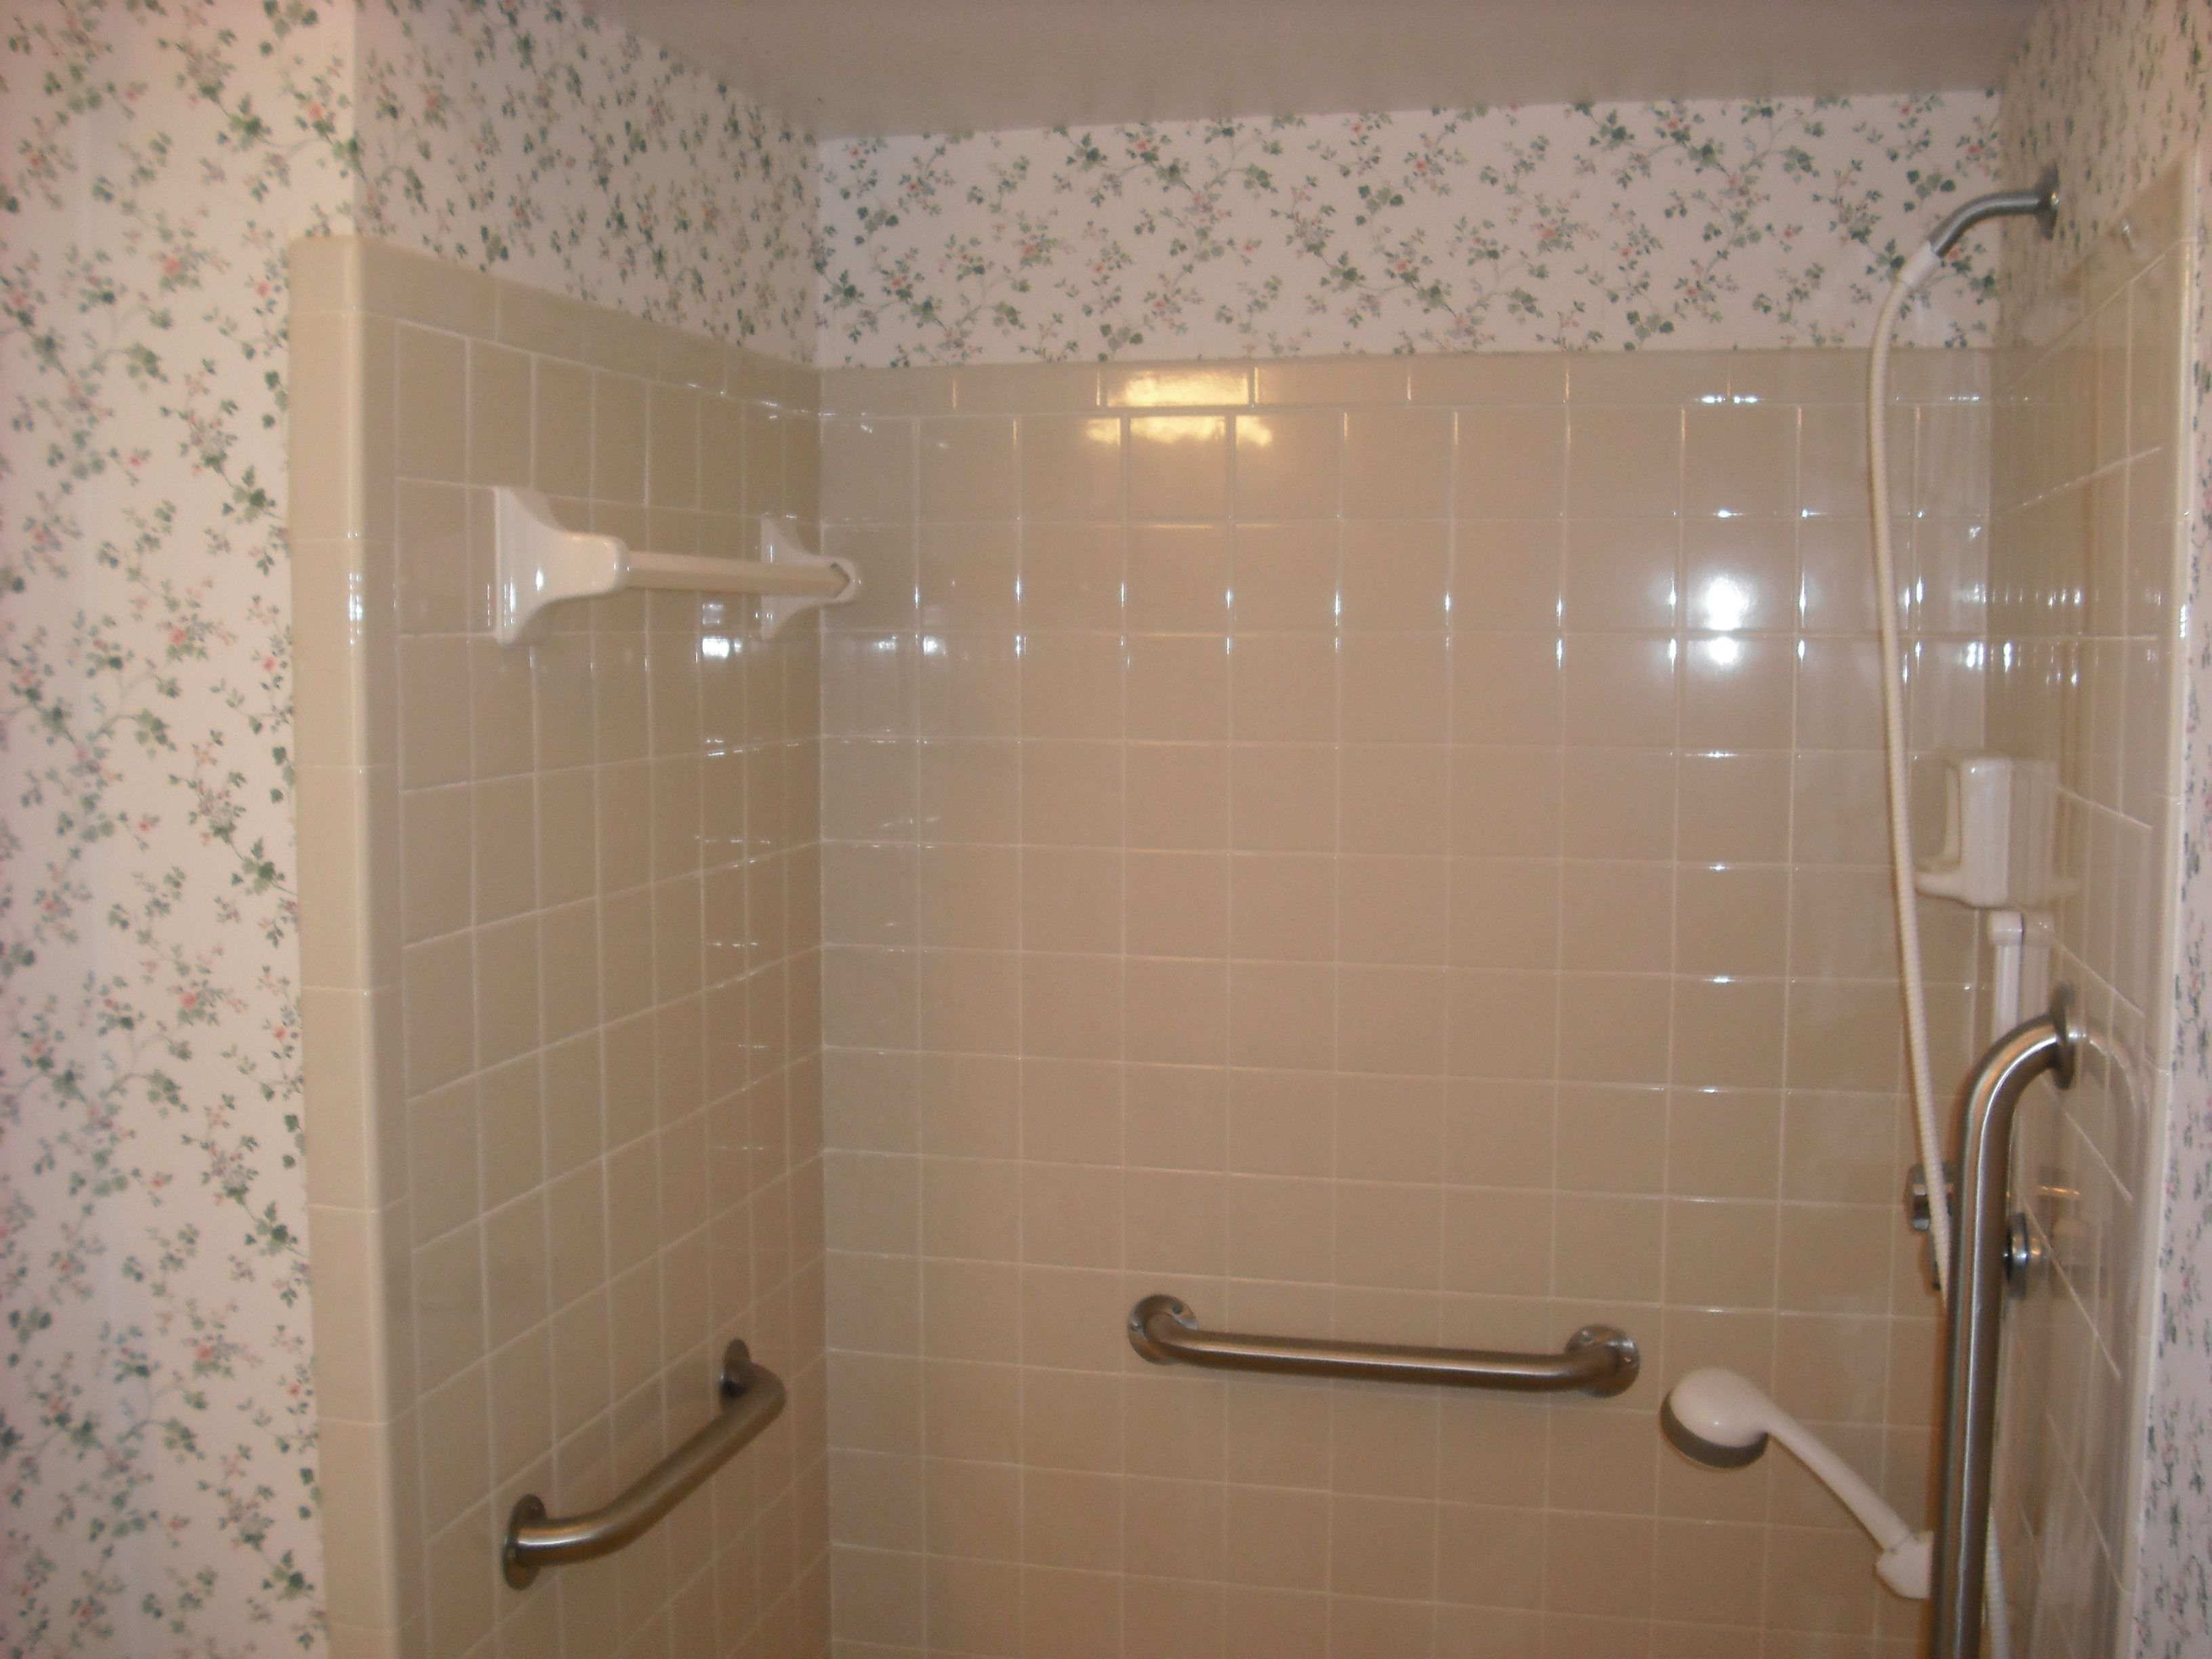 prior to remodeling virginia beach bathroom | Bathroom Remodel ... on beach bathroom paint, beach bathroom shower, beach bathroom design ideas, beach bathroom decor, beach bathroom makeover, beach master bathroom ideas, beach bathroom decorating, beach commercial, beach bathroom floor, beach bathroom sink, beach bathroom tile, beach bathroom storage, beach bathroom house, beach bathroom remodeling ideas, beach bathroom light, beach bathroom painting, beach bathroom color schemes, beach bathroom art, beach designs for bathrooms, beach home bathroom,